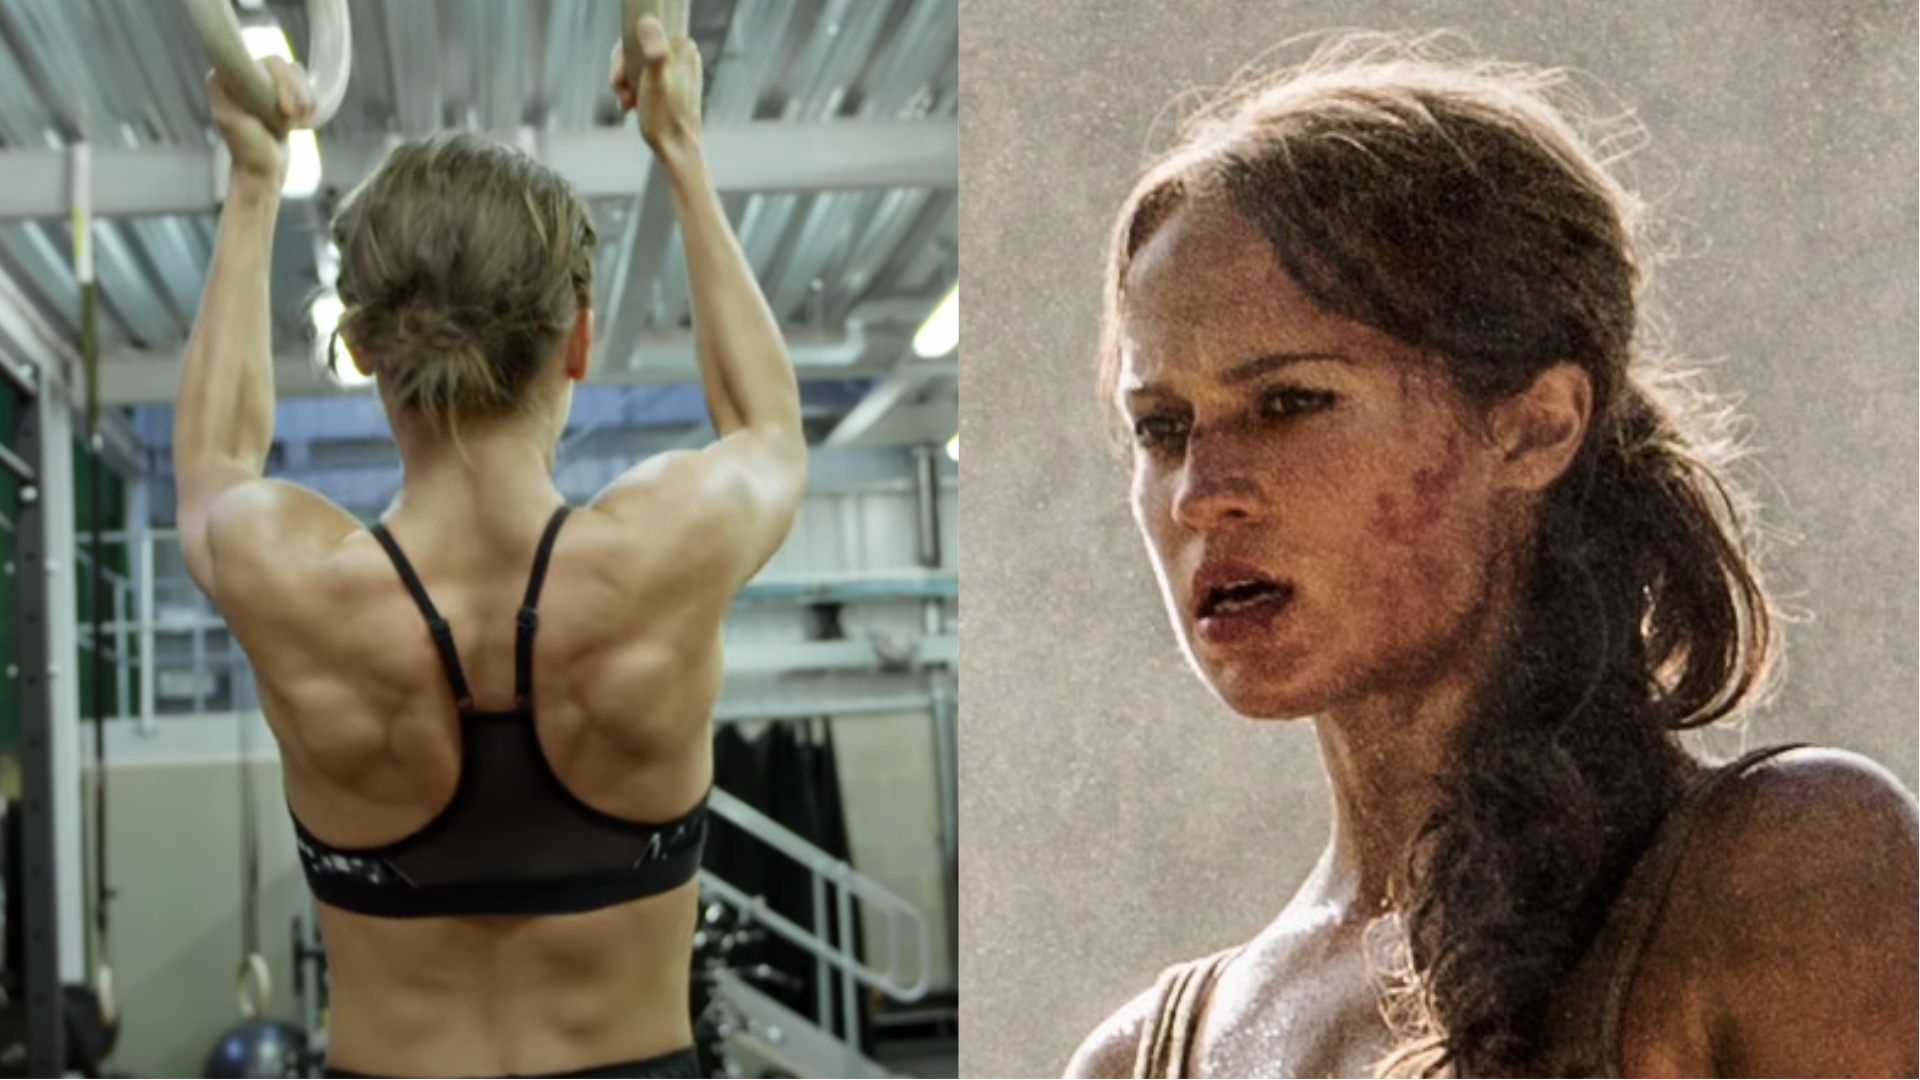 Watch Alicia Vikander's Intense Training for 'Tomb Raider' Reboot